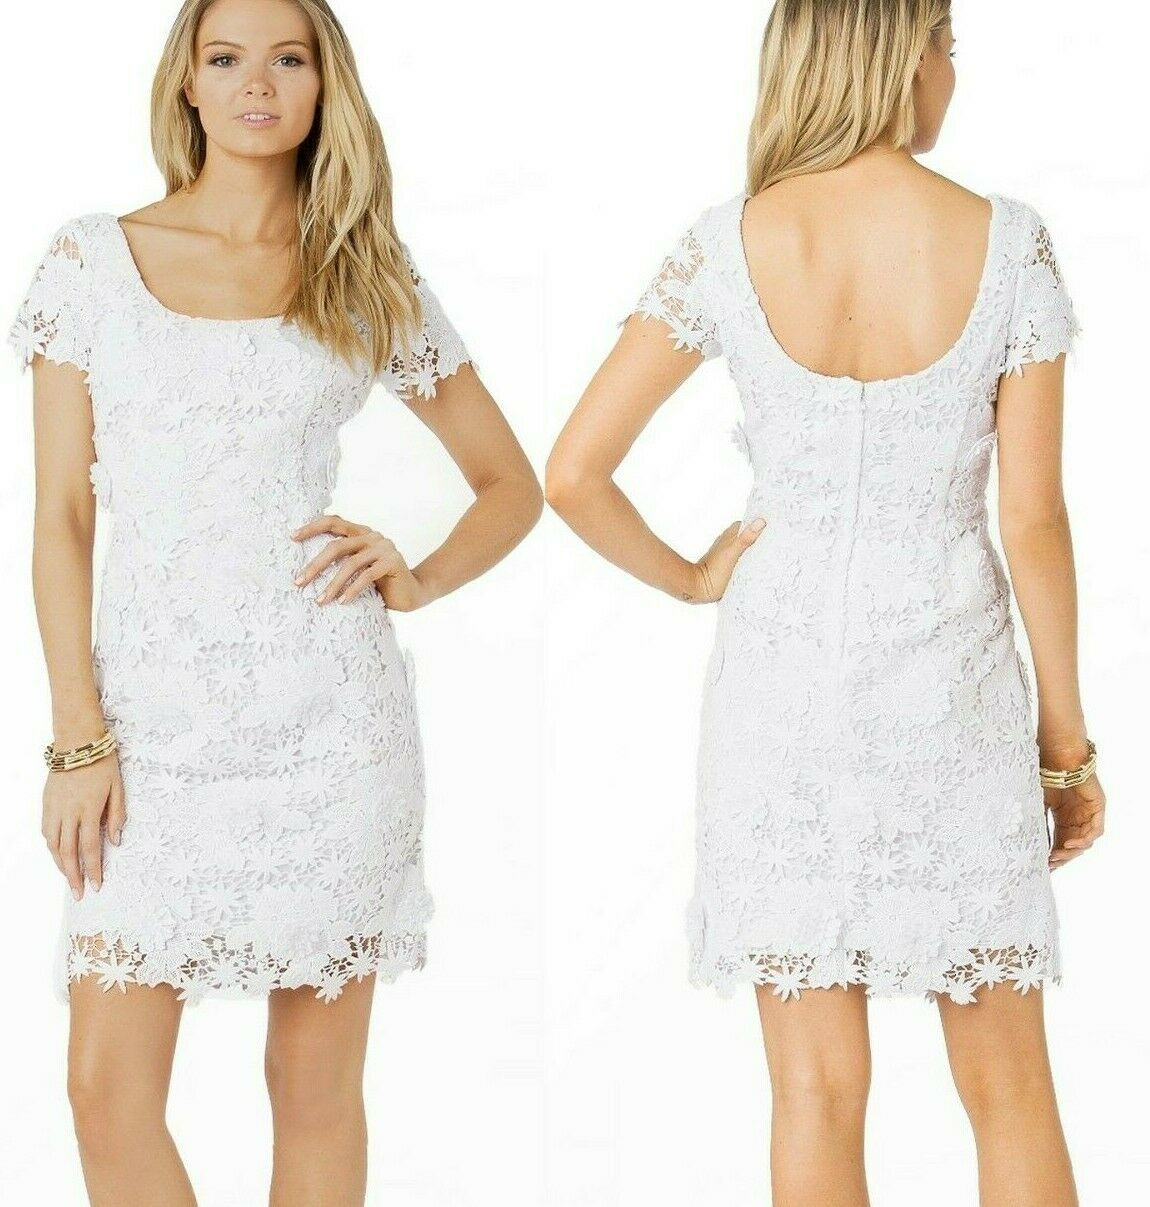 398 Lilly Pulitzer Marta Resort White Truly Truly Truly Floral Lace Dress 07442f